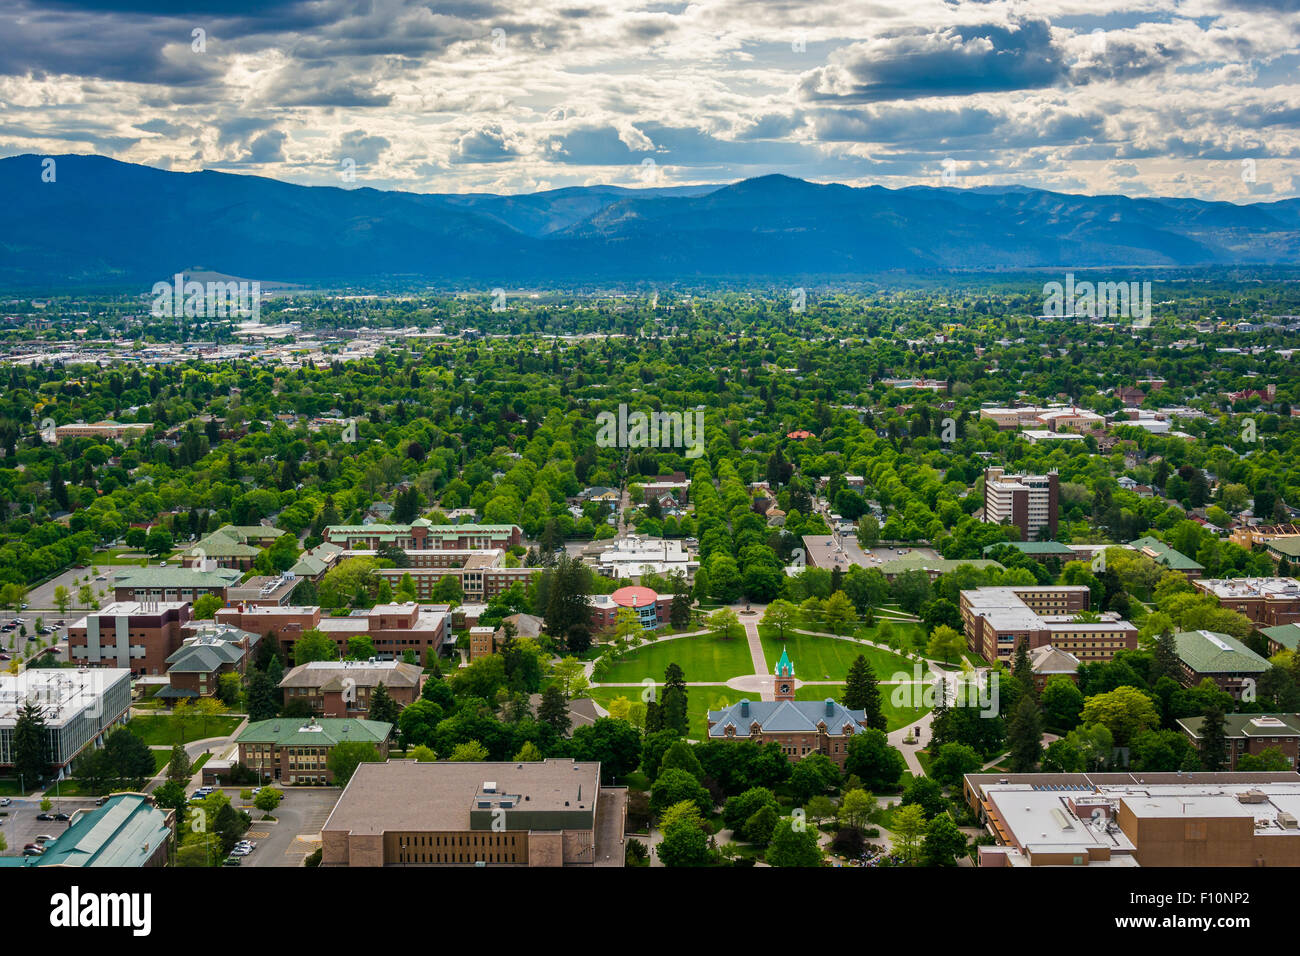 View of University of Montana from Mount Sentinel, in Missoula, Montana. Stock Photo